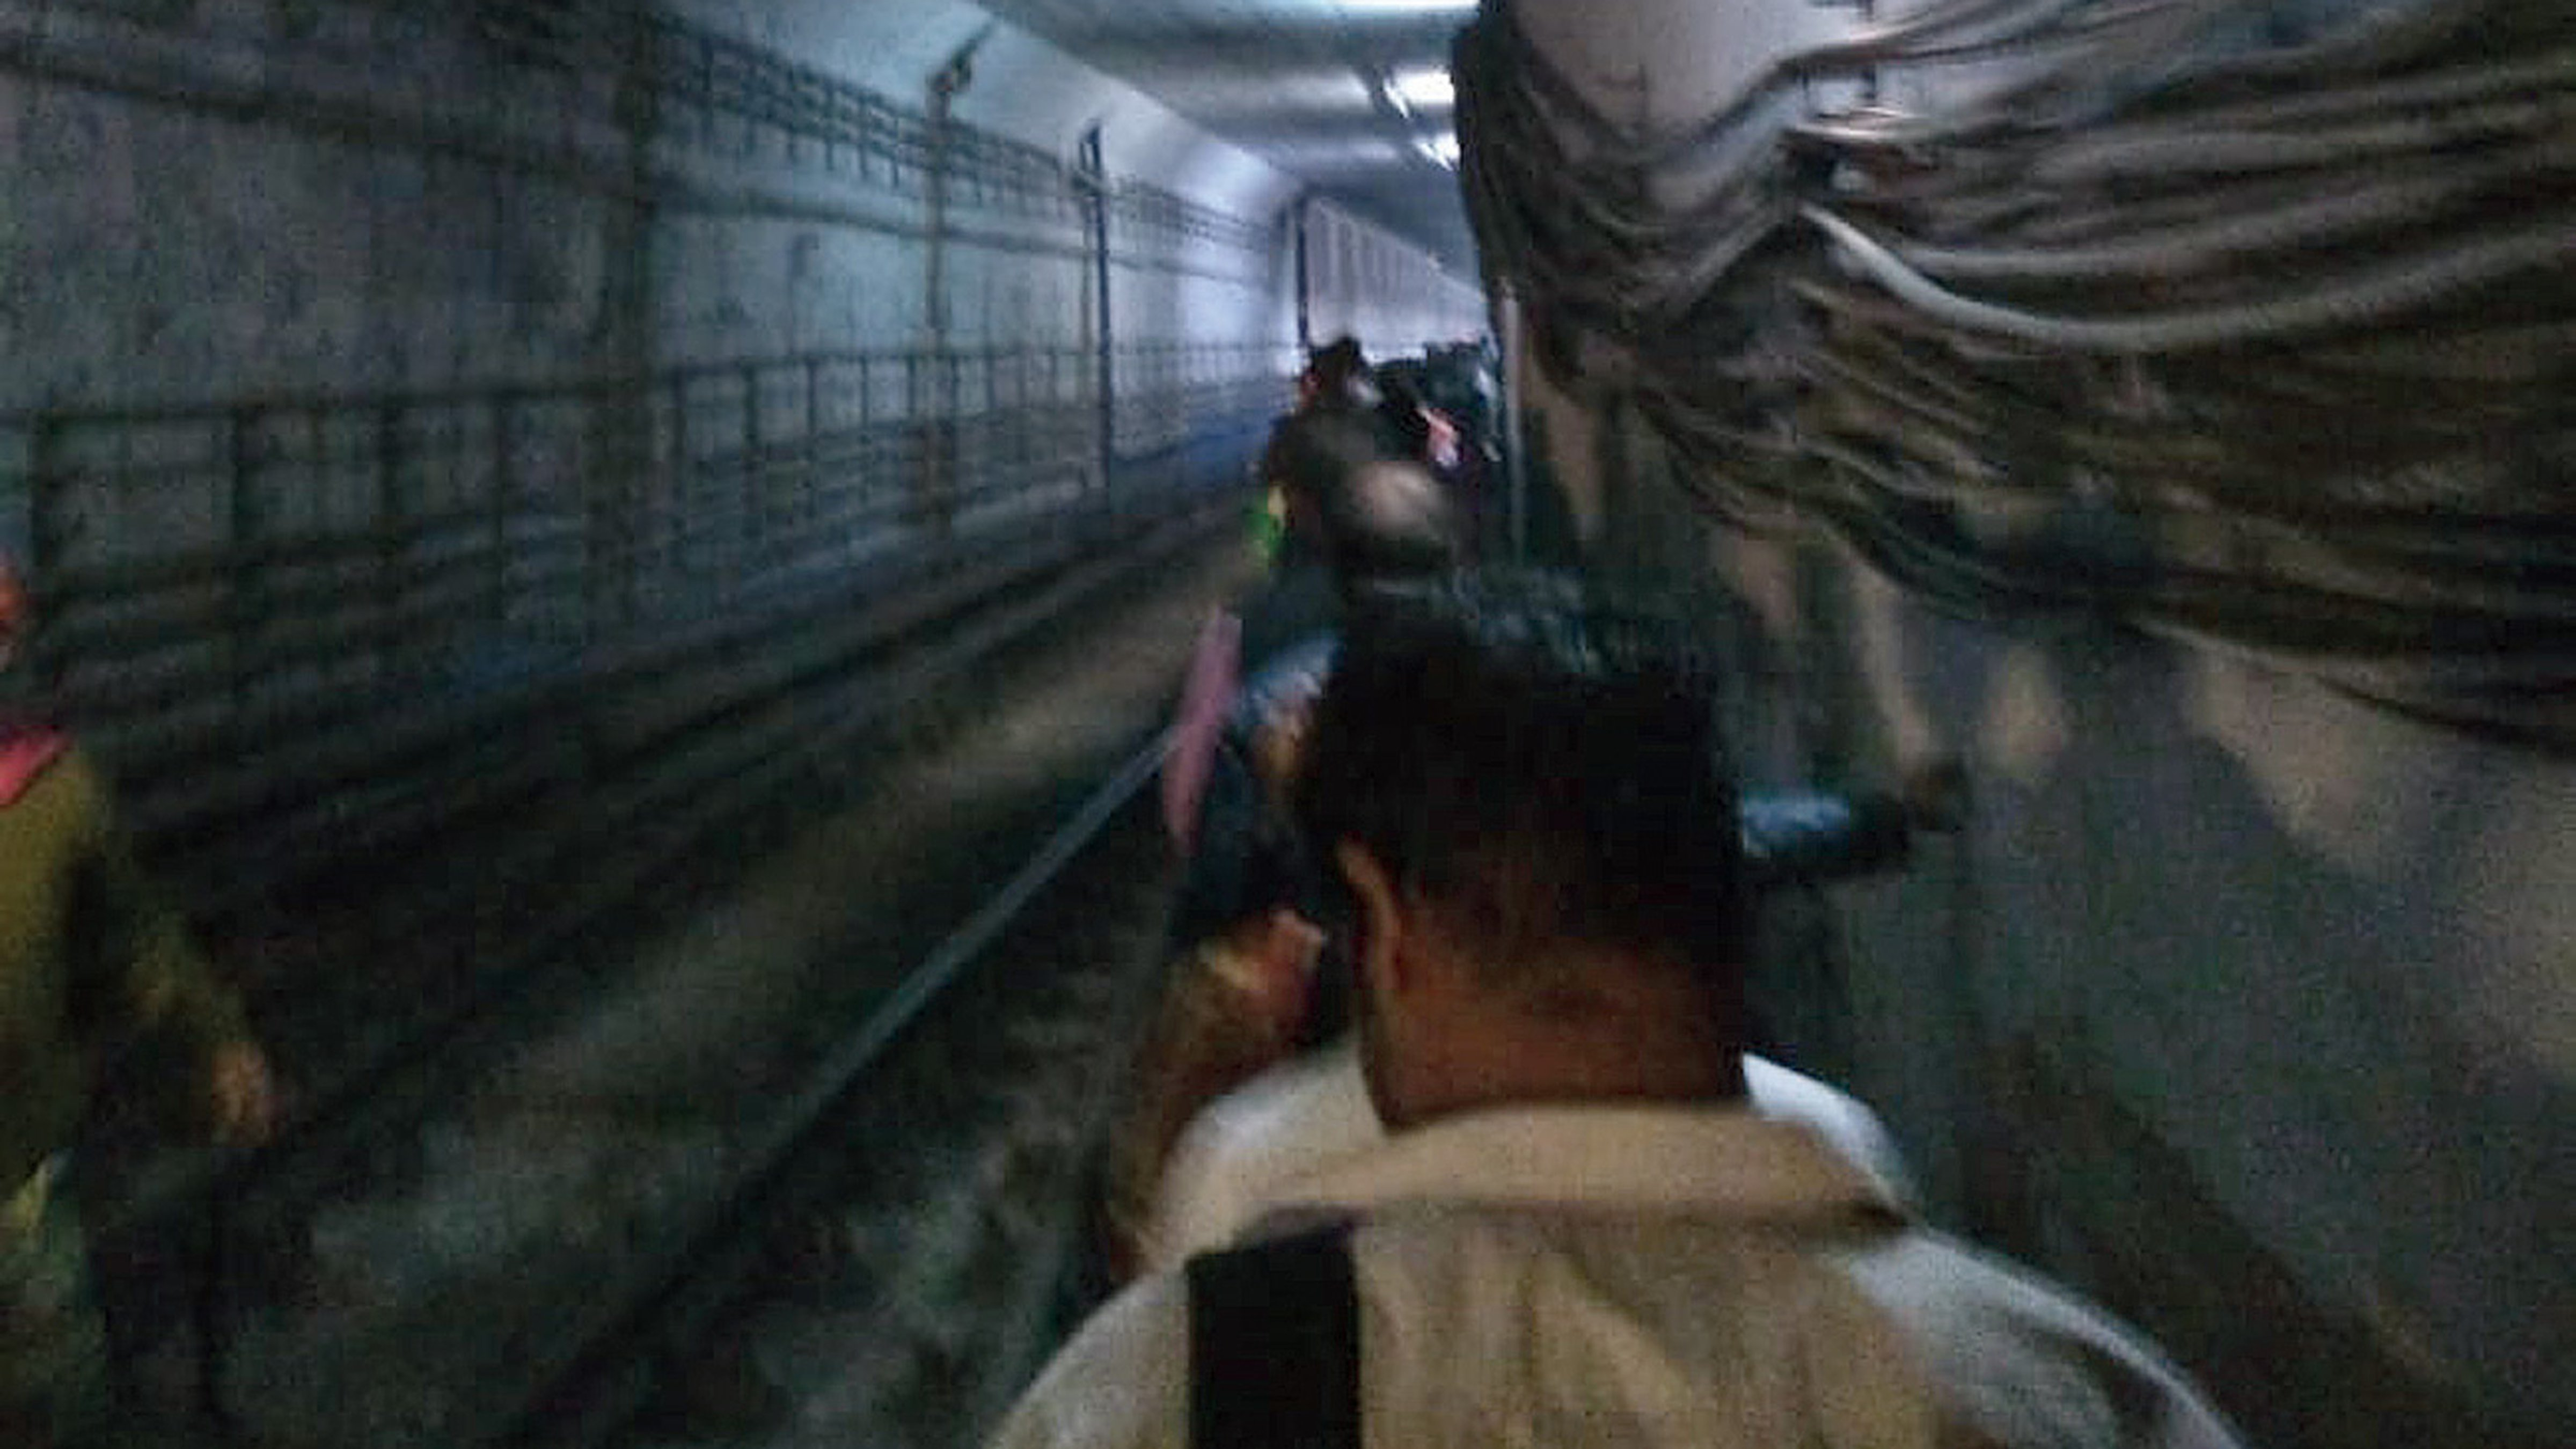 Passengers being evacuated through the tunnel leading to Maidan Metro station after the train fire on Thursday.